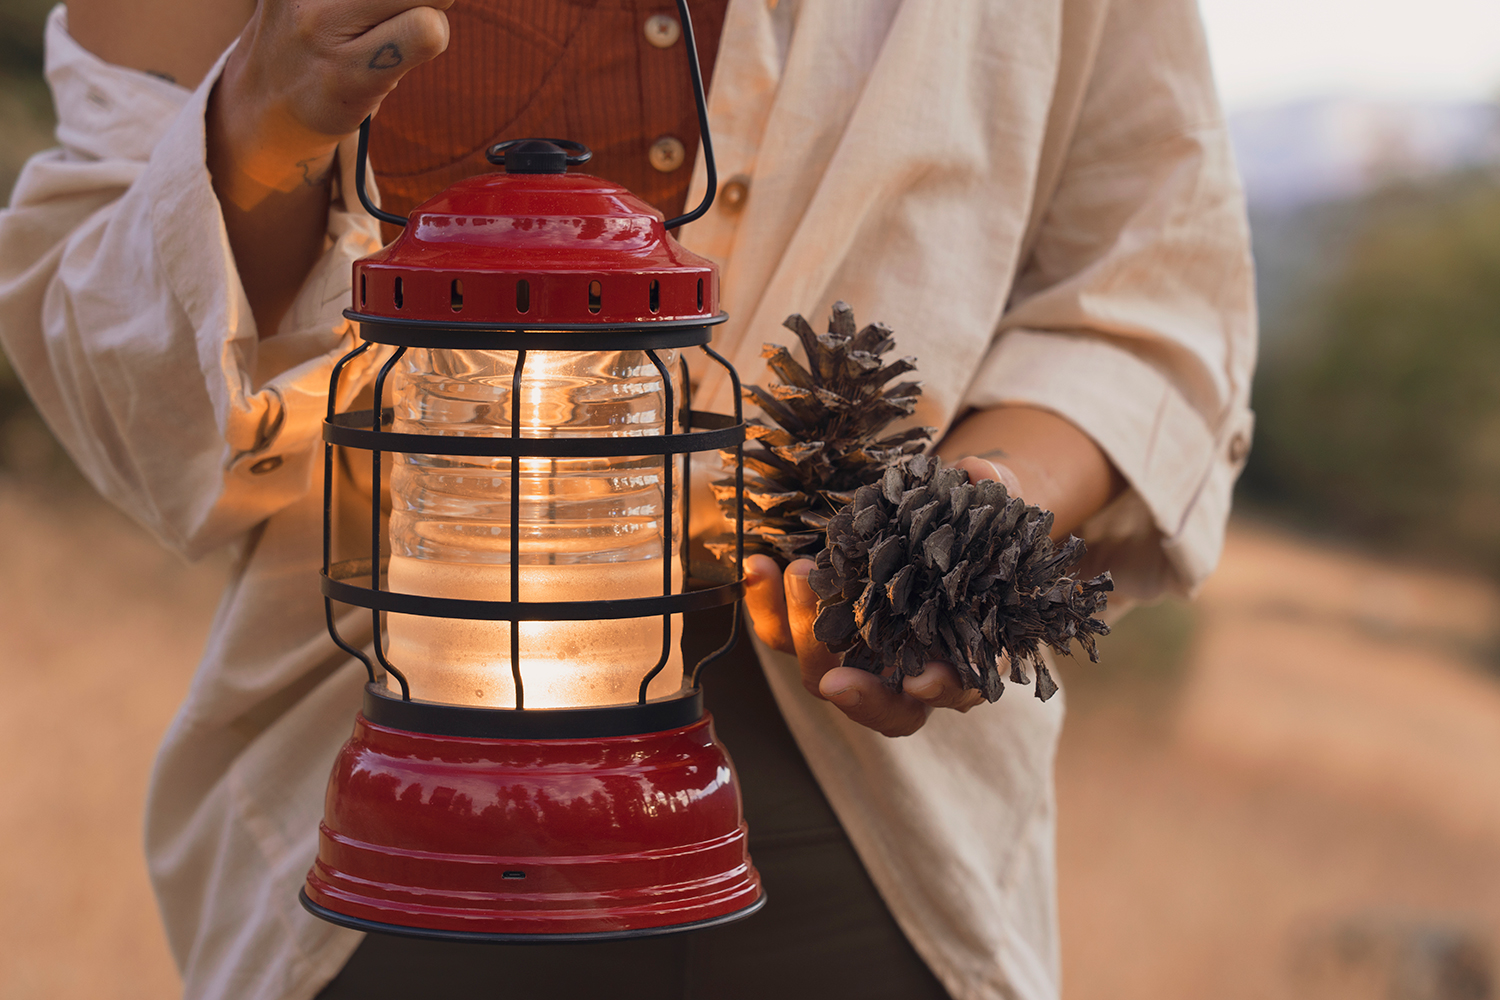 11getaway-bigbear-glamping-outdoor-lamp-pinecones-fall-travel